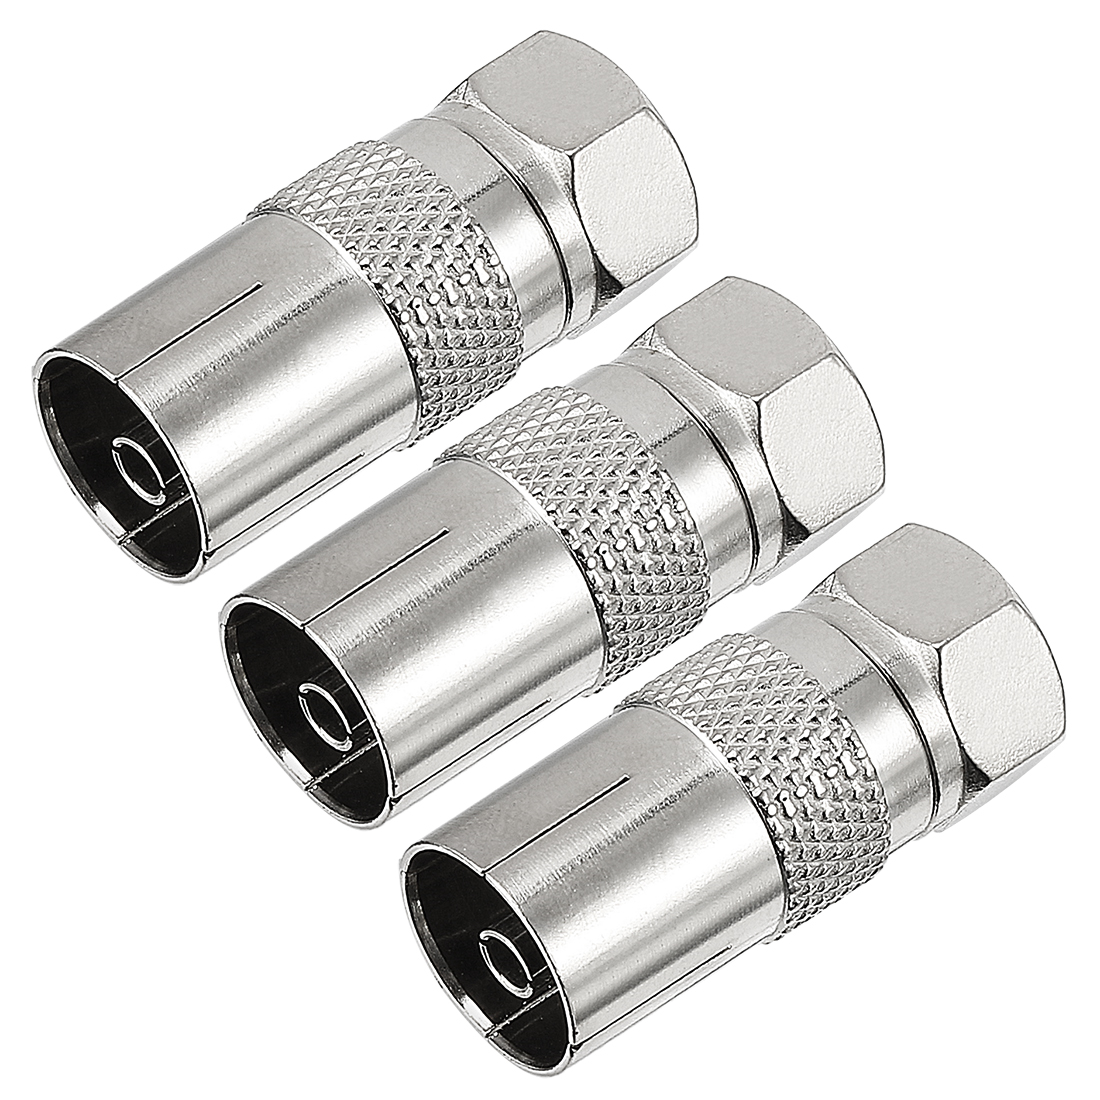 3pcs Silver Tone BSP F Male to PAL Female Jack RF Coaxial Adapter Connector